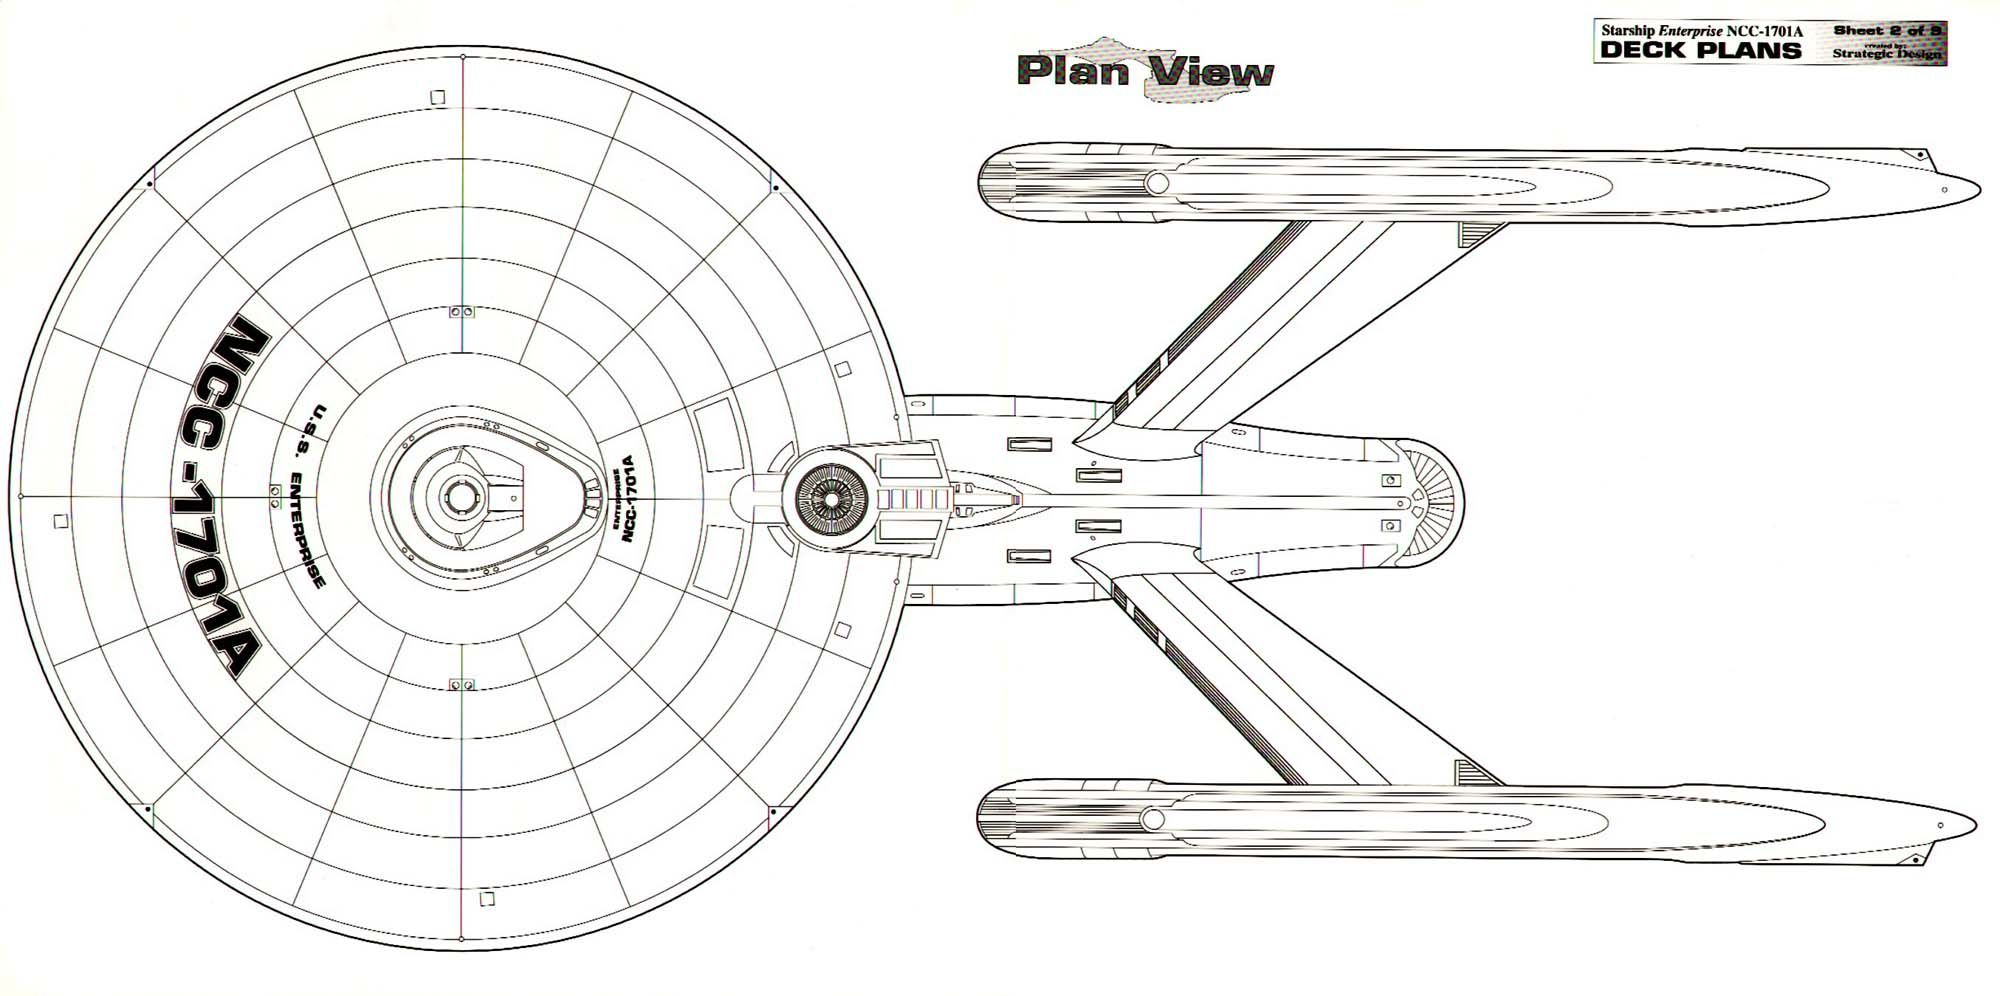 dorsal schematic of u s s  enterprise ncc